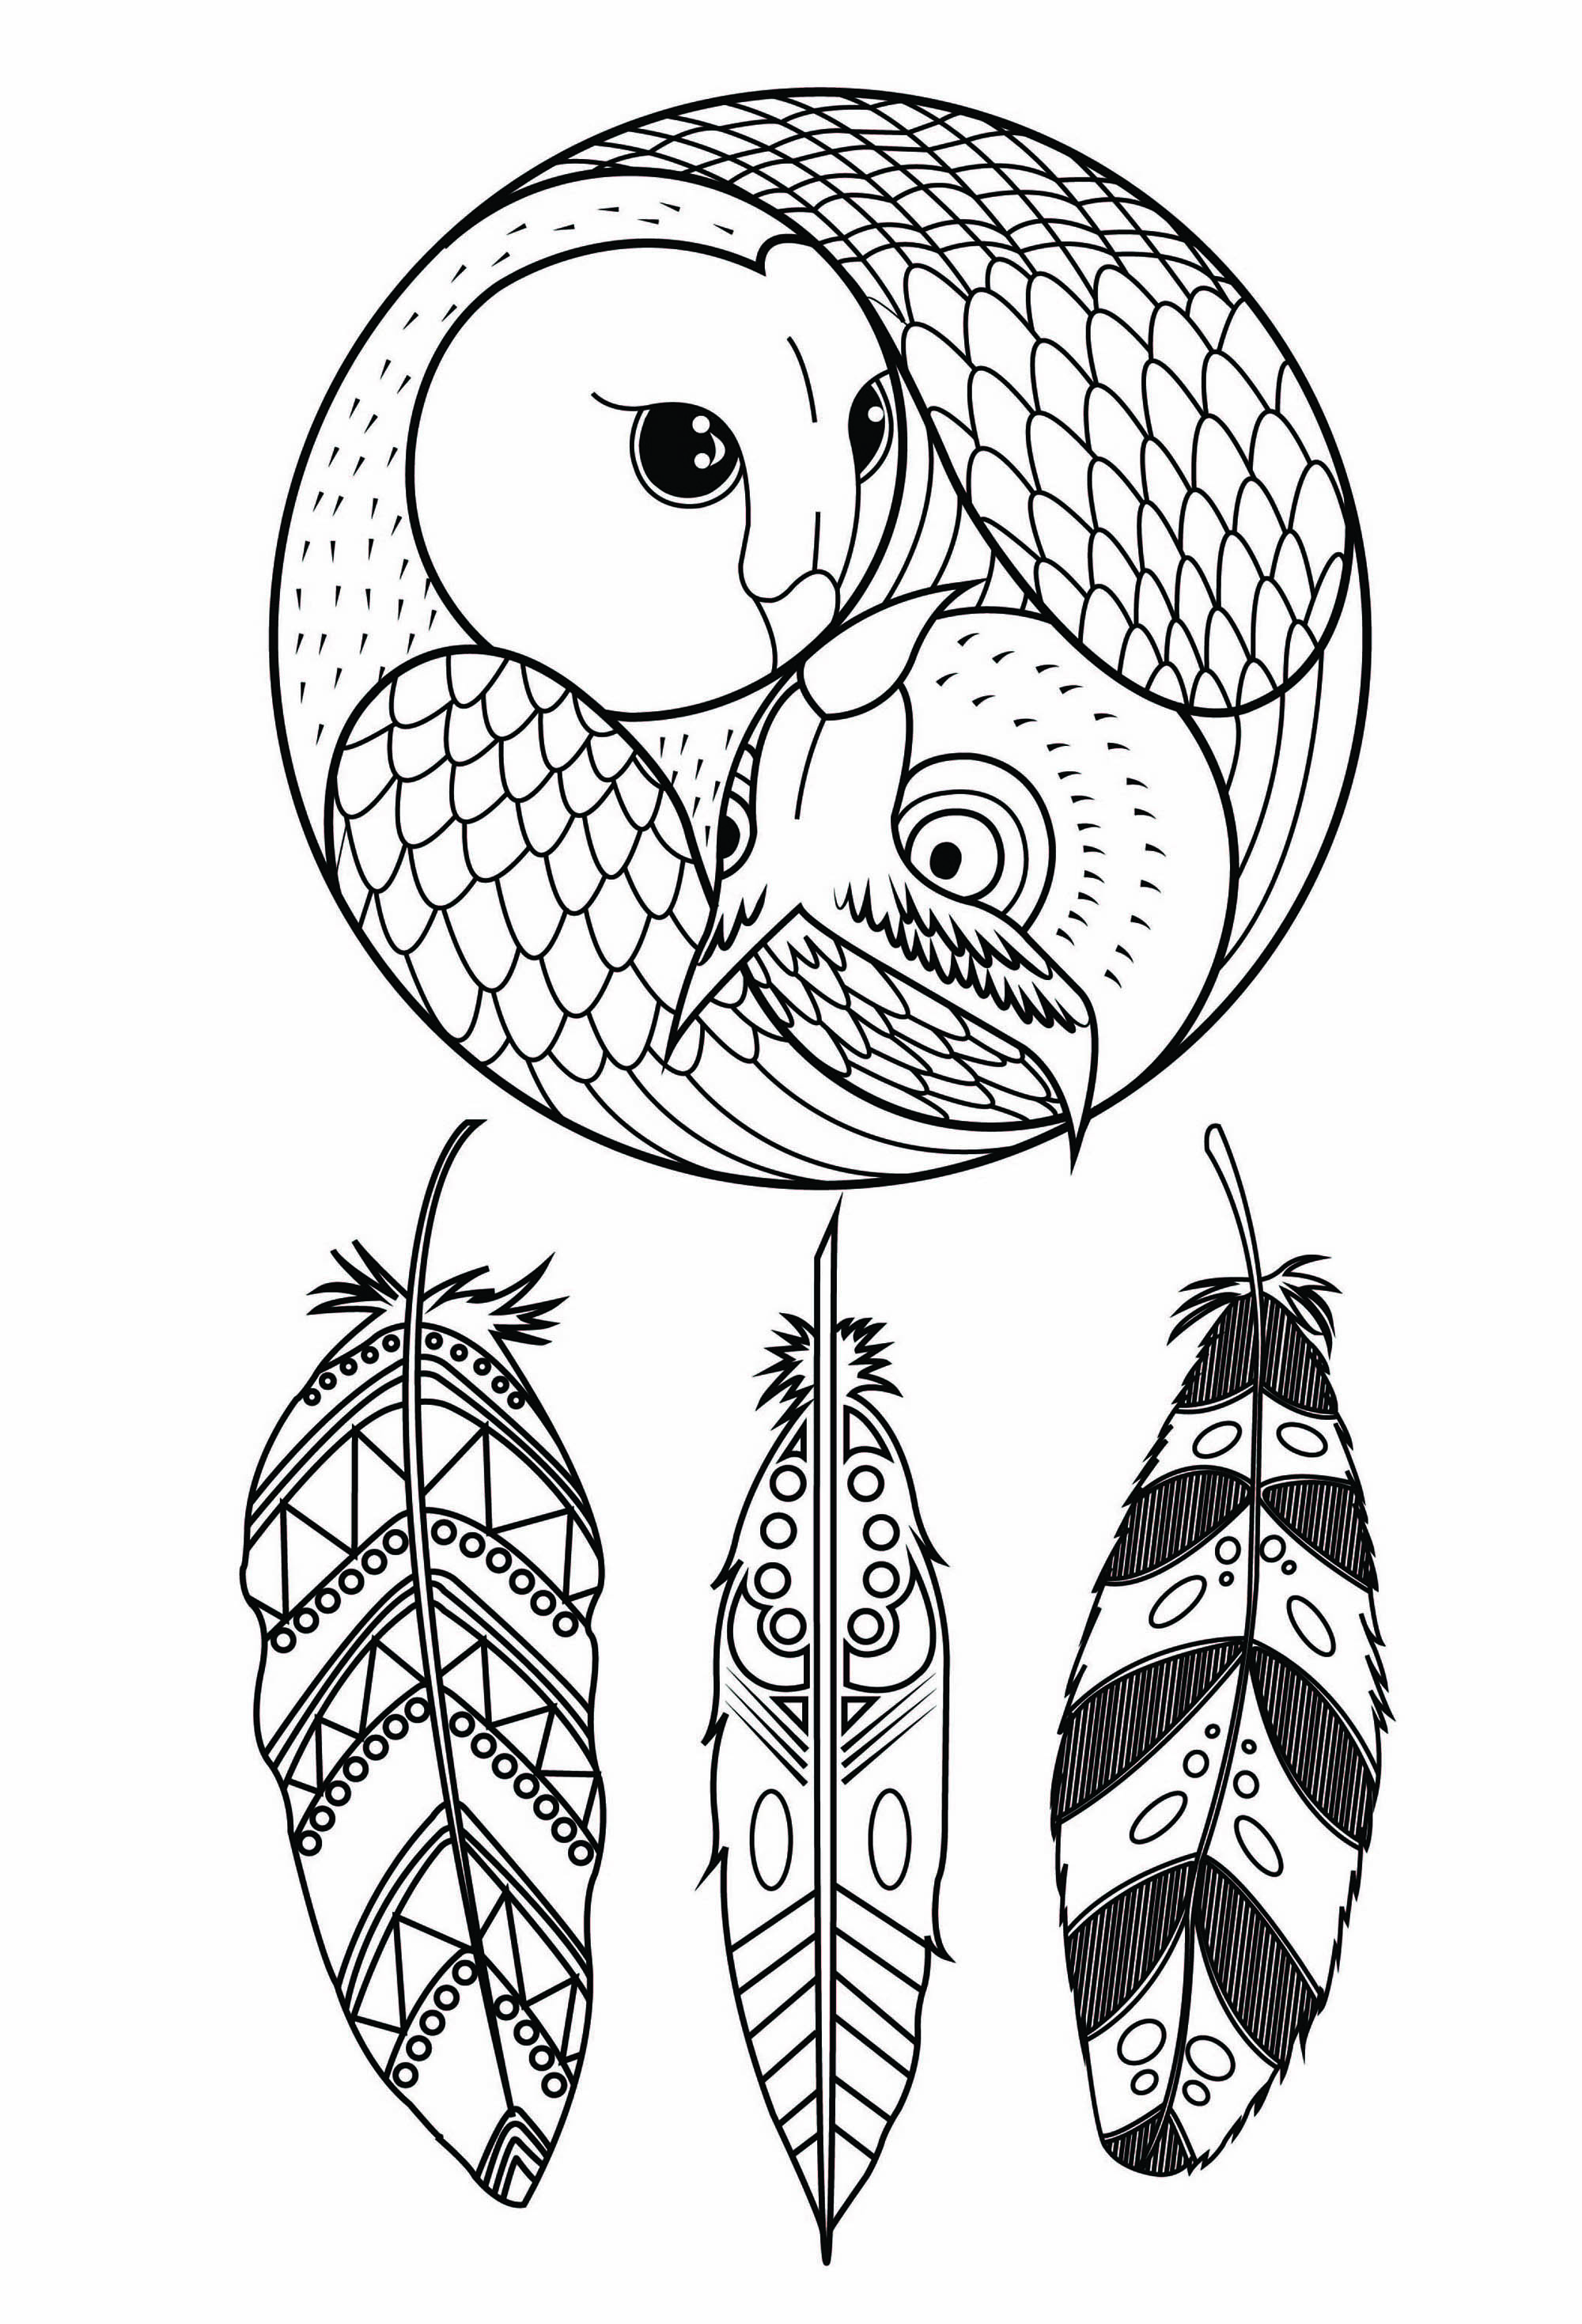 Coloring owl dreamcatcher